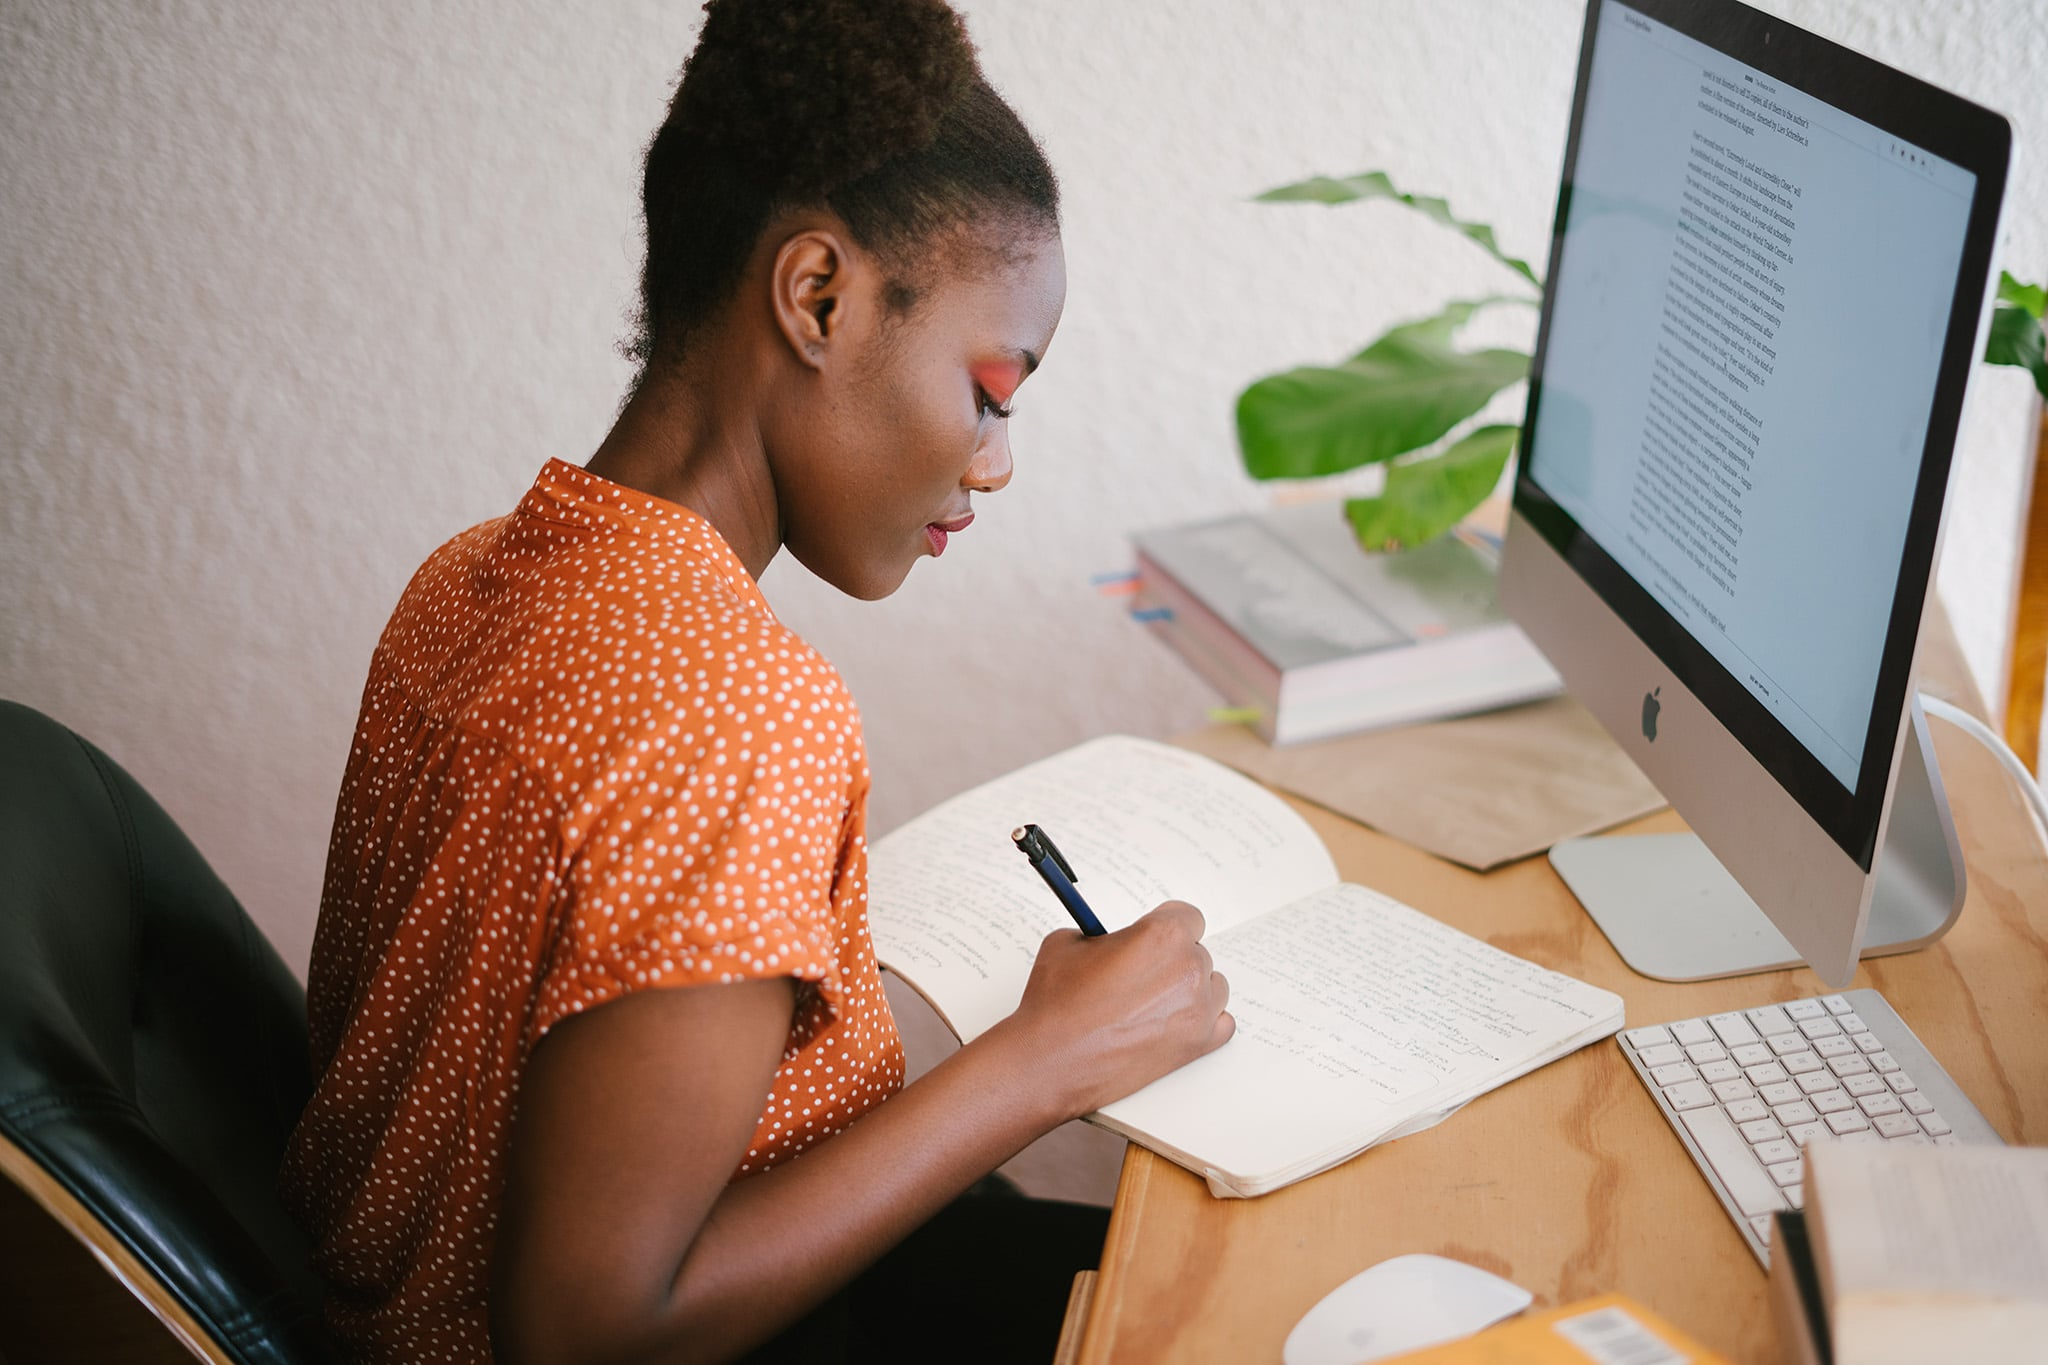 Black woman scholar-activist is working at a desk in front of her computer while writing in a notebook, representing the intellectual work of scholar-activism